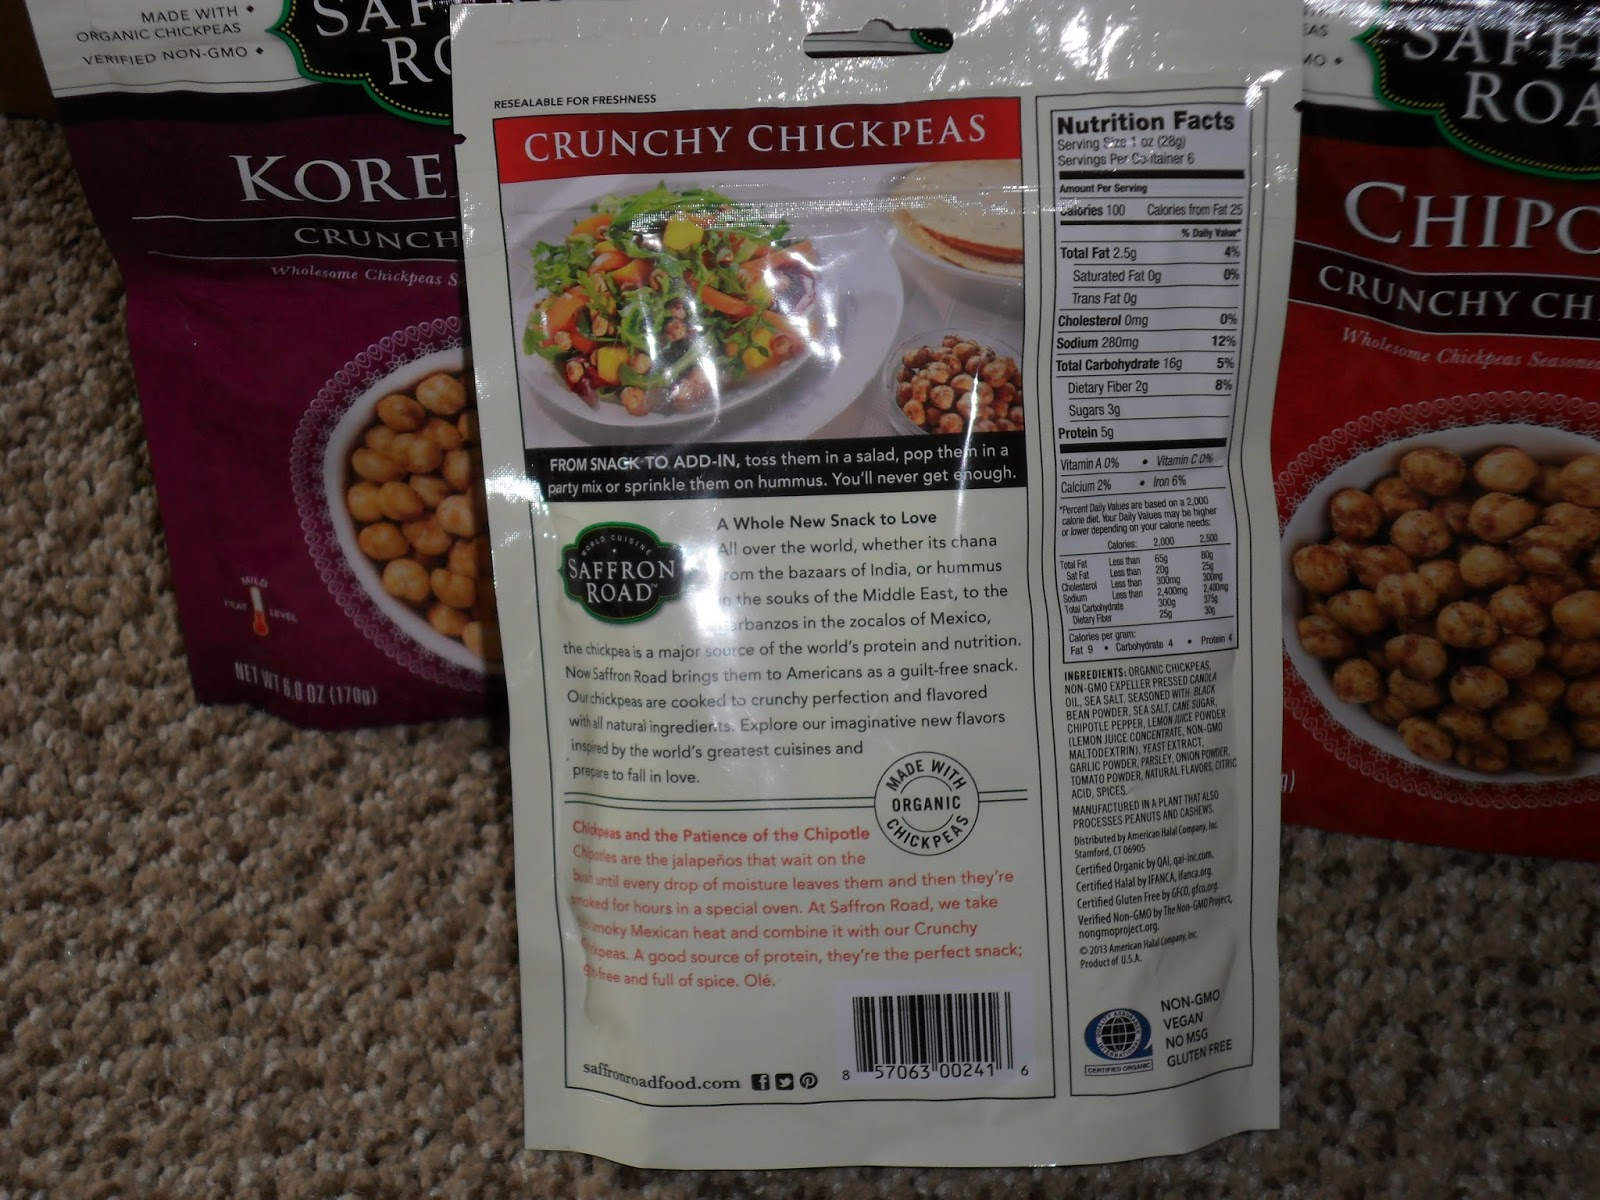 Trendy and tasty crunchy chickpeas from Saffron Road. Review